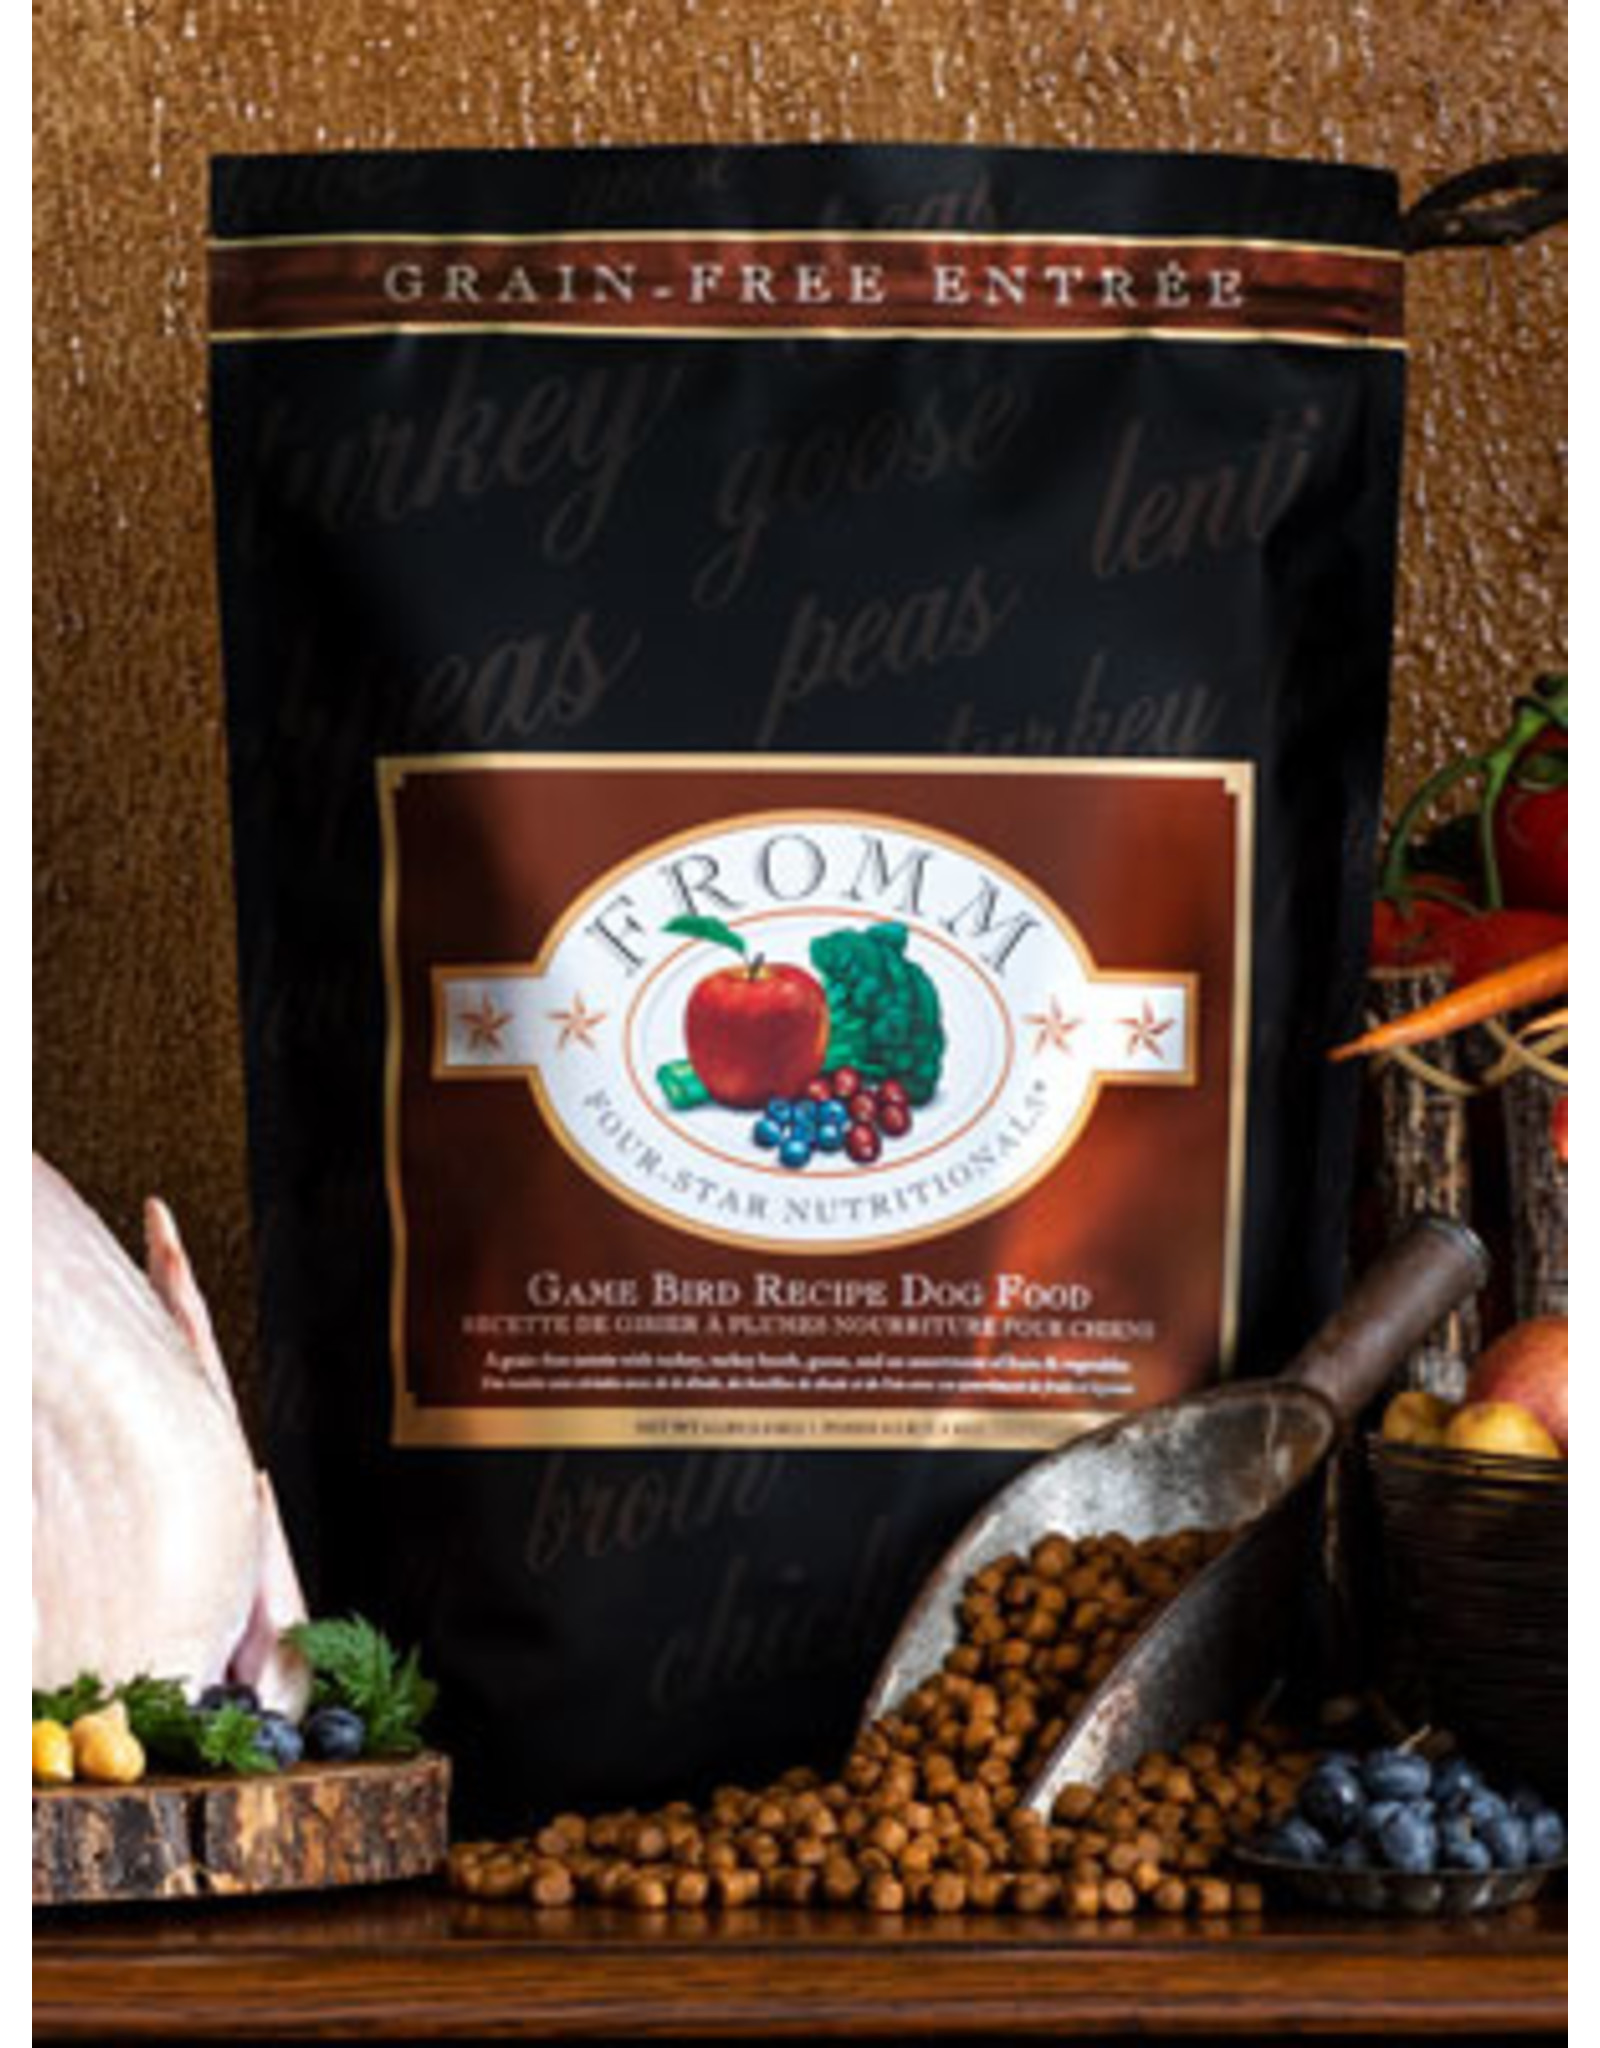 Fromm Fromm Dry Dog Food 4Star Nutritionals Game Bird Recipe Turkey, Goose, & Fruit & Vegetables Grain Free